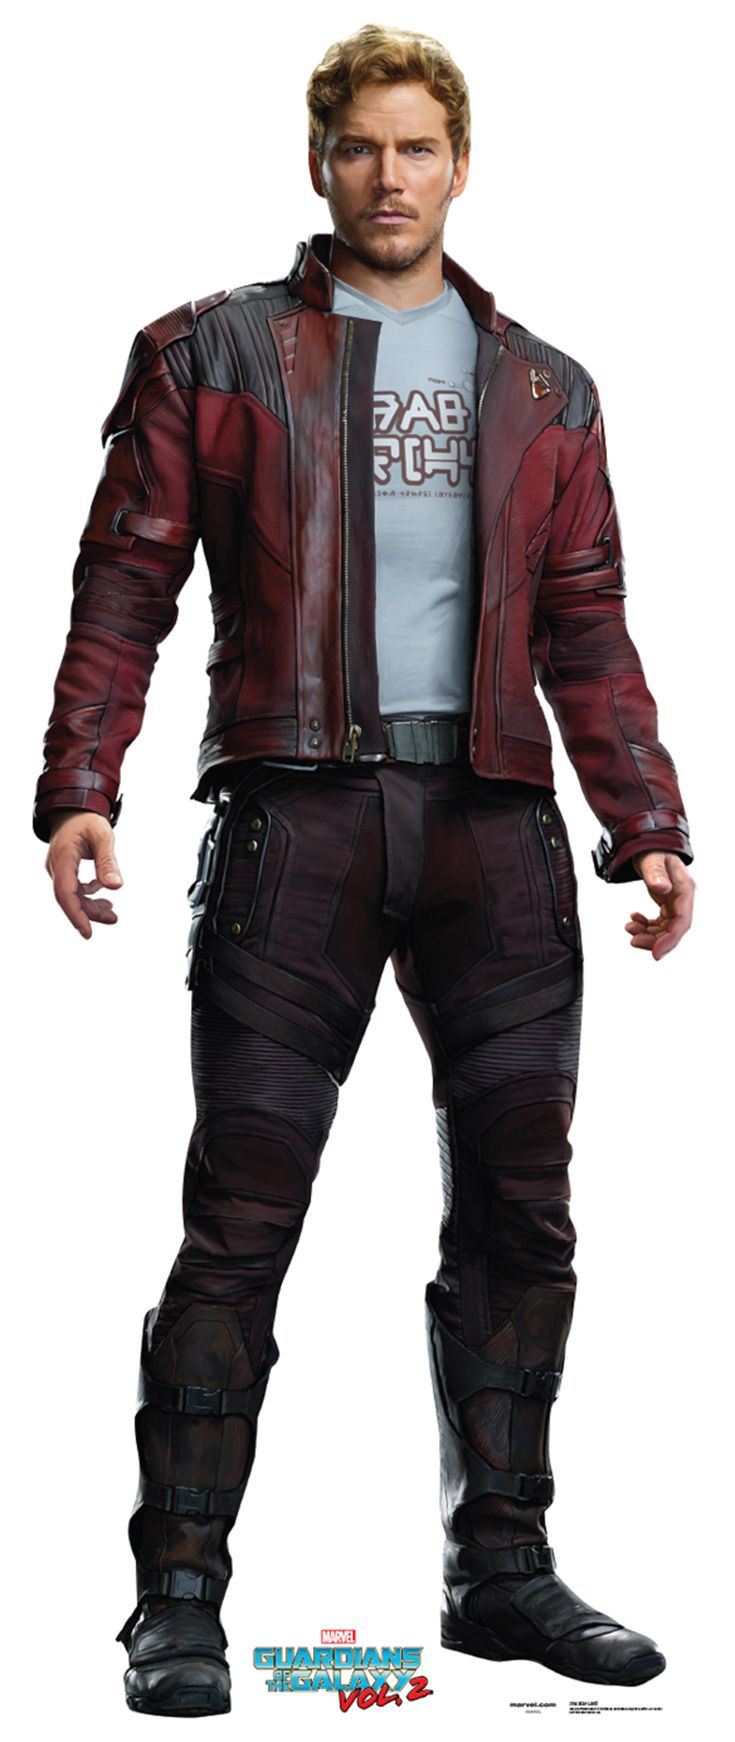 "STAR-LORD / PETER QUILL Cardboard Cutout Standup / Standee from ""Guardians of the Galaxy Vol 2 (2017)"" 